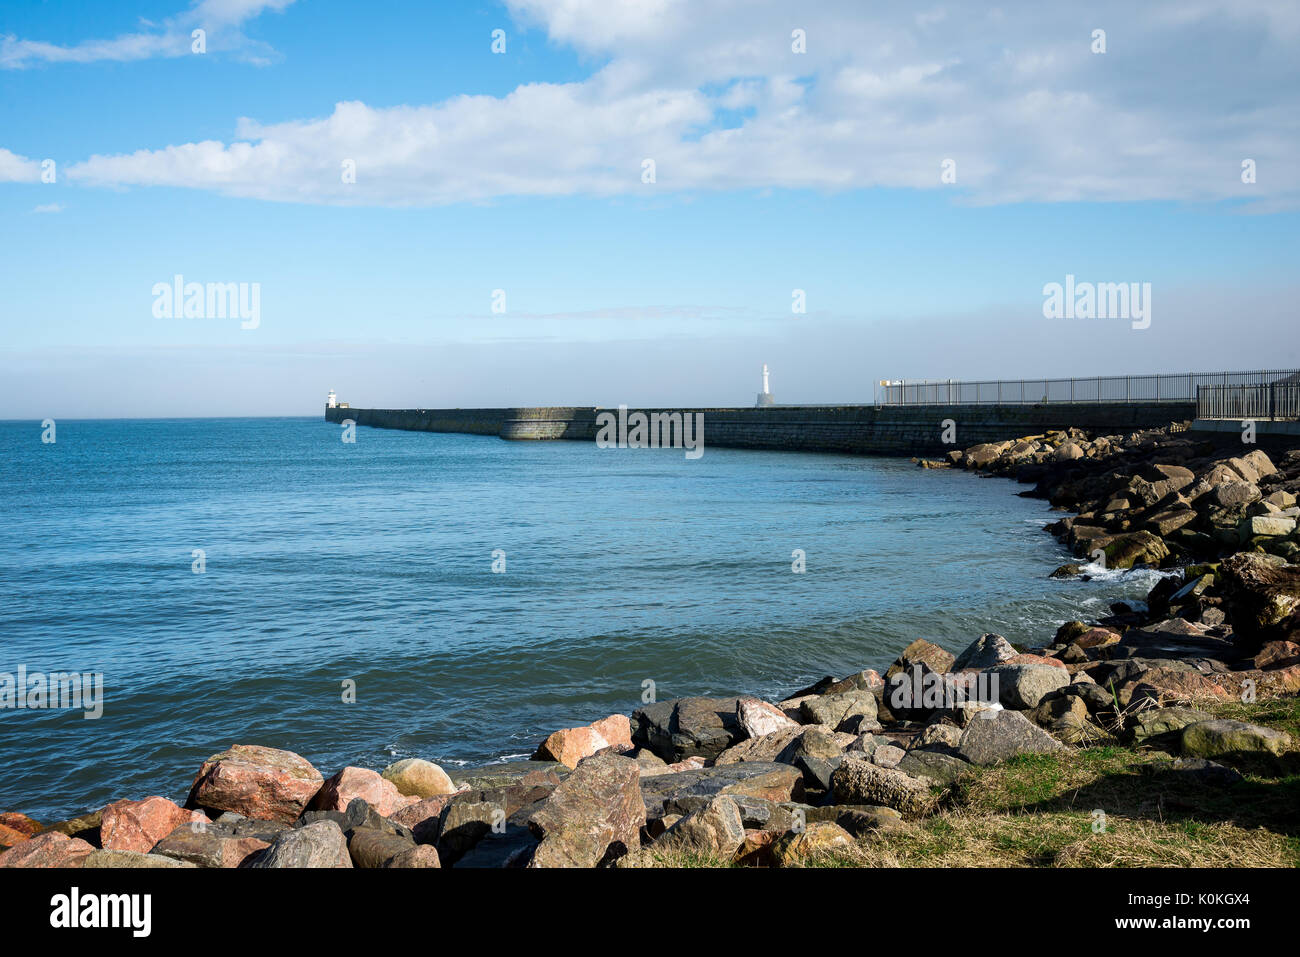 Lighthouses at piers in Aberdeen Harbour entrance, Scotland - Stock Image